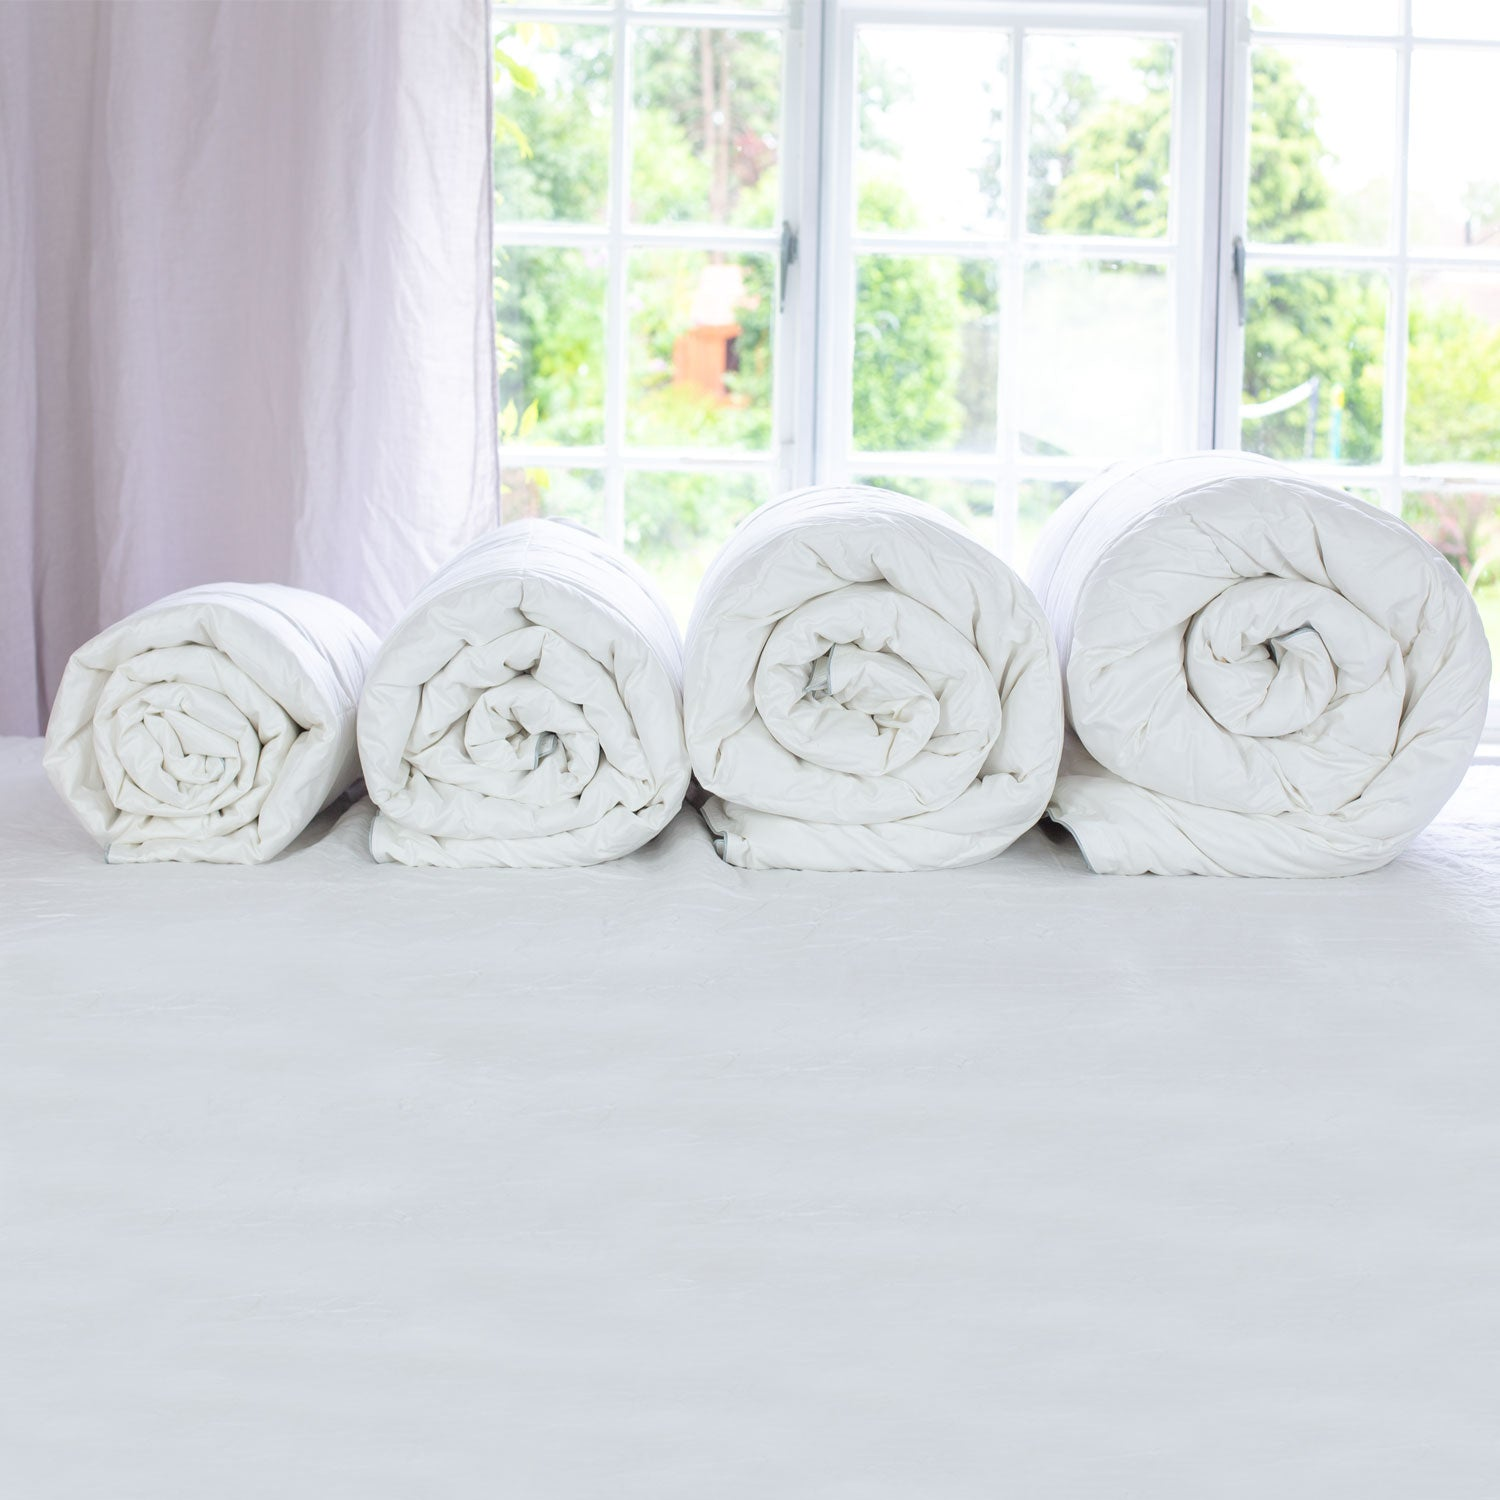 files/scooms_4_rolled_duvets_1500x1500_4d3d5b8b-a2df-439d-88f7-210a099824d4.jpg